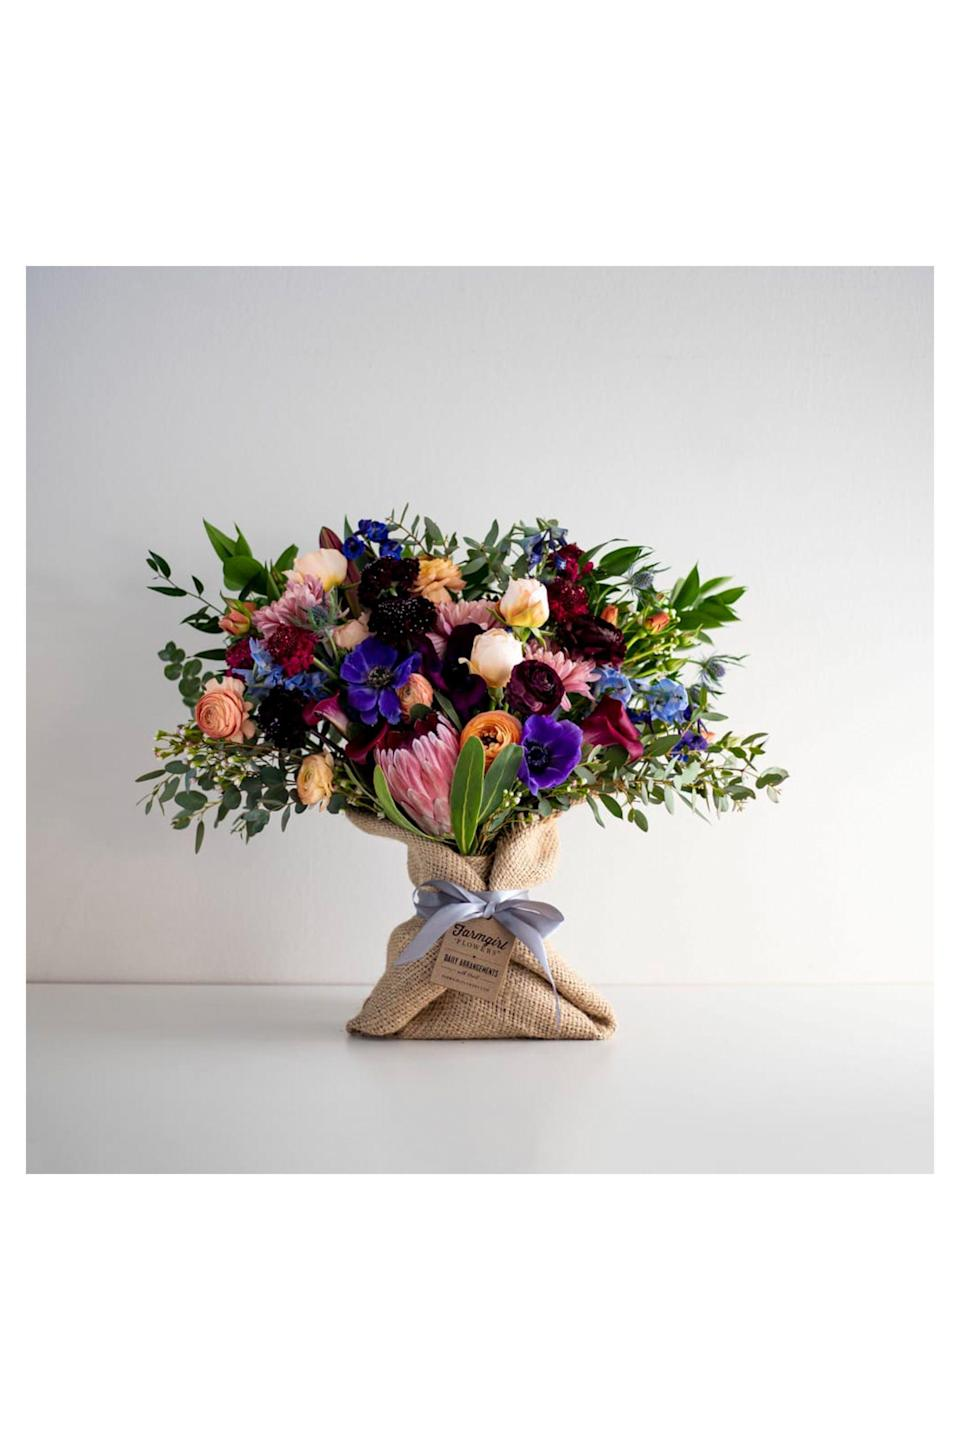 """<p><strong>Farmgirl Flowers </strong></p><p>farmgirlflowers.com</p><p><strong>$99.00</strong></p><p><a href=""""https://farmgirlflowers.com/big-love-burlap-wrapped-bouquet"""" rel=""""nofollow noopener"""" target=""""_blank"""" data-ylk=""""slk:Shop Now"""" class=""""link rapid-noclick-resp"""">Shop Now</a></p><p>Designed with love and wrapped in reused burlap coffee bags from local roasters (hello sustainability!), <a href=""""https://farmgirlflowers.com/"""" rel=""""nofollow noopener"""" target=""""_blank"""" data-ylk=""""slk:Farm Girl Flowers"""" class=""""link rapid-noclick-resp"""">Farm Girl Flowers</a> sources their flowers ethically and honestly with nationwide shipping. </p>"""